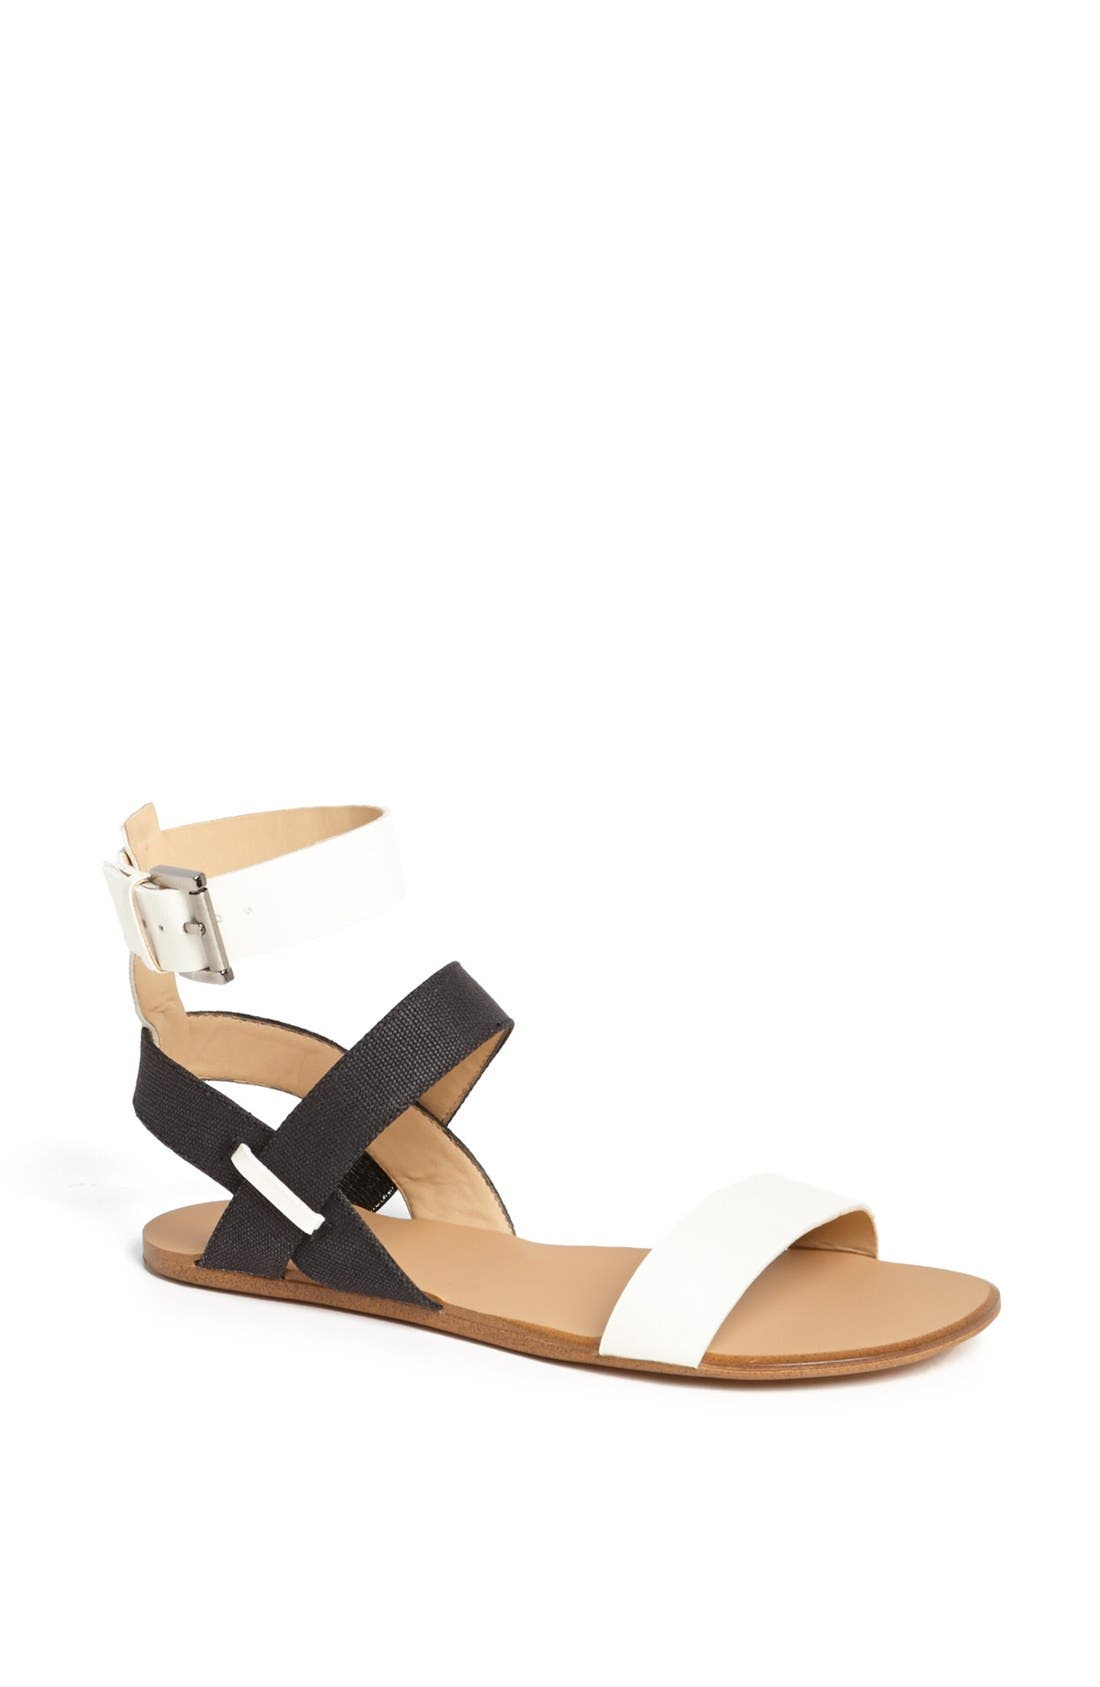 Alternate Image 1 Selected - Joe's 'Eryn' Sandal